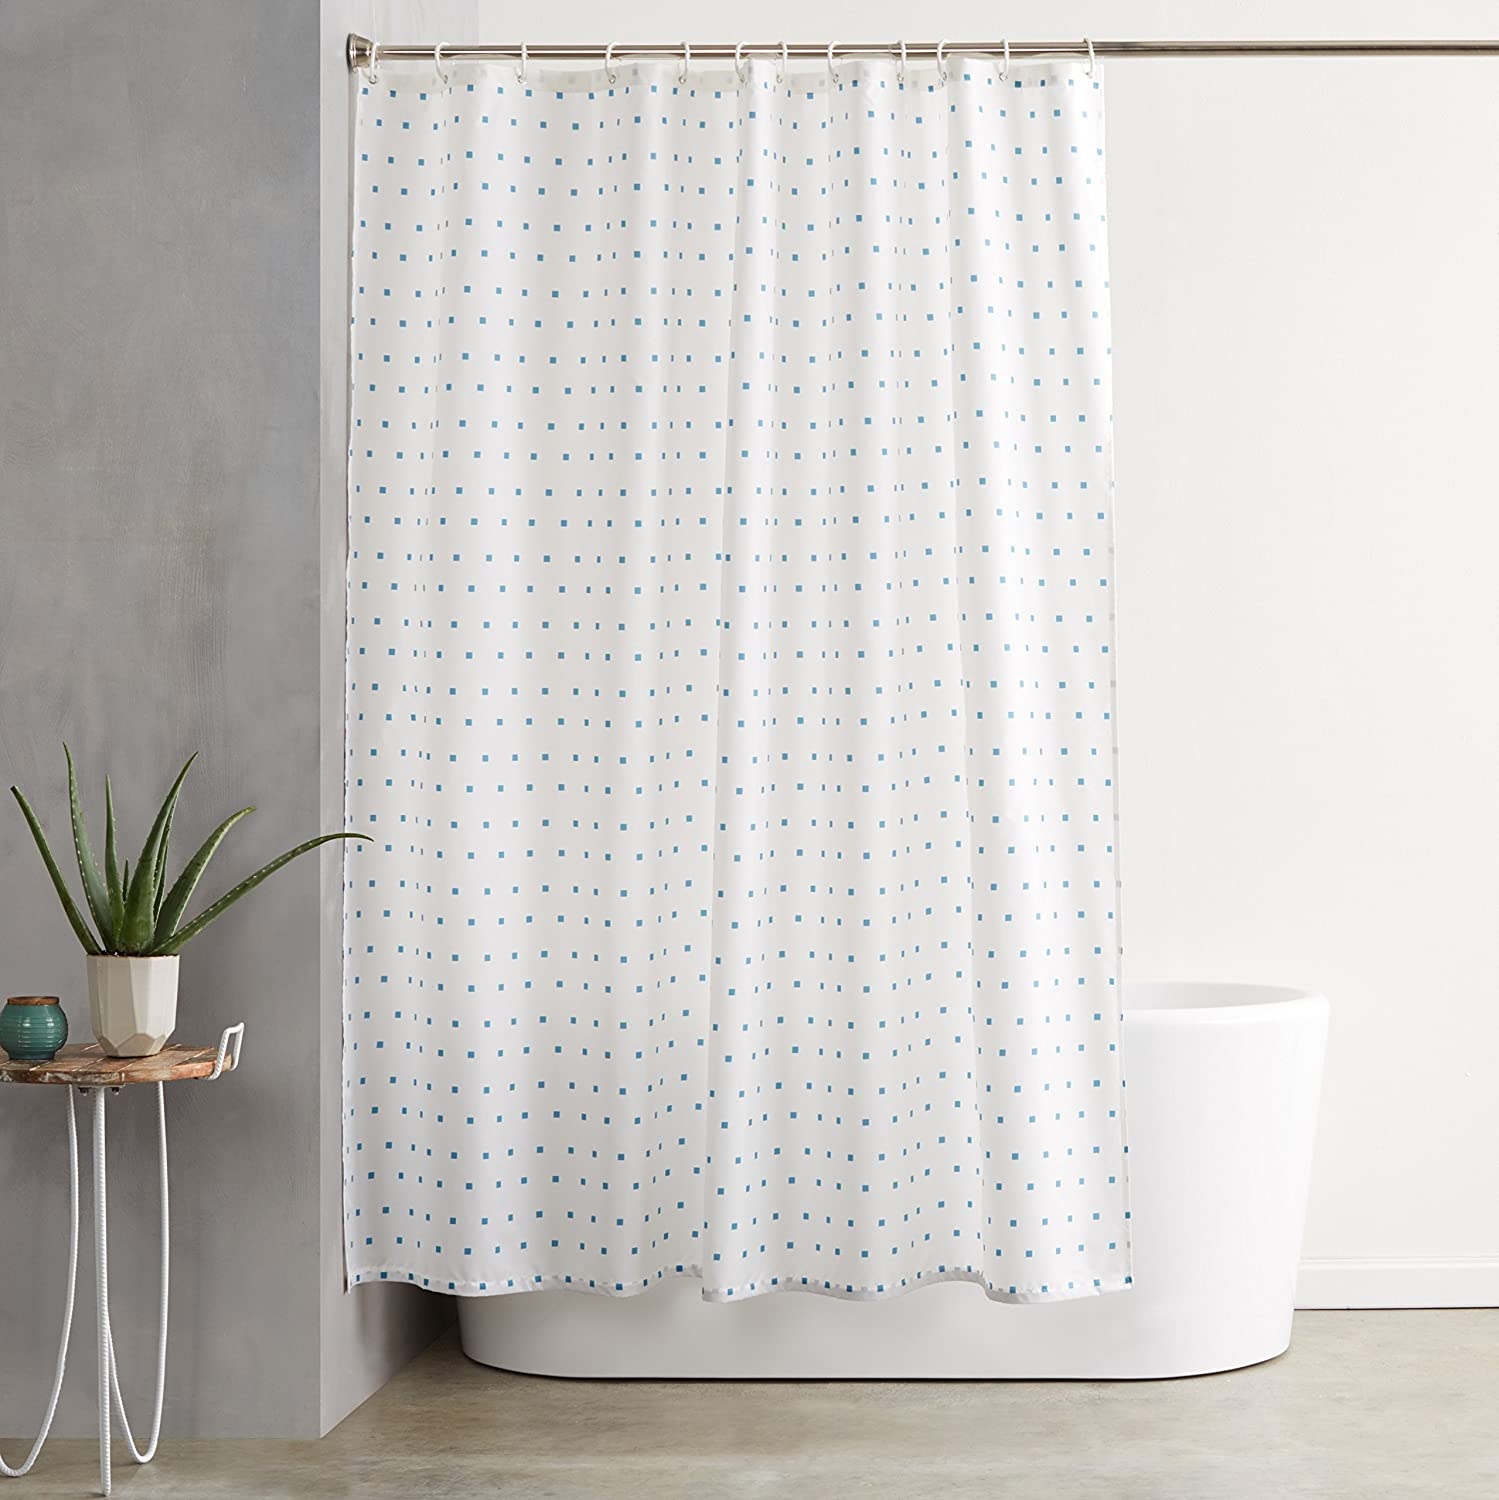 QUALITY Transparent Fish Clear Plastic Shower Curtain, 180 x 200 ...